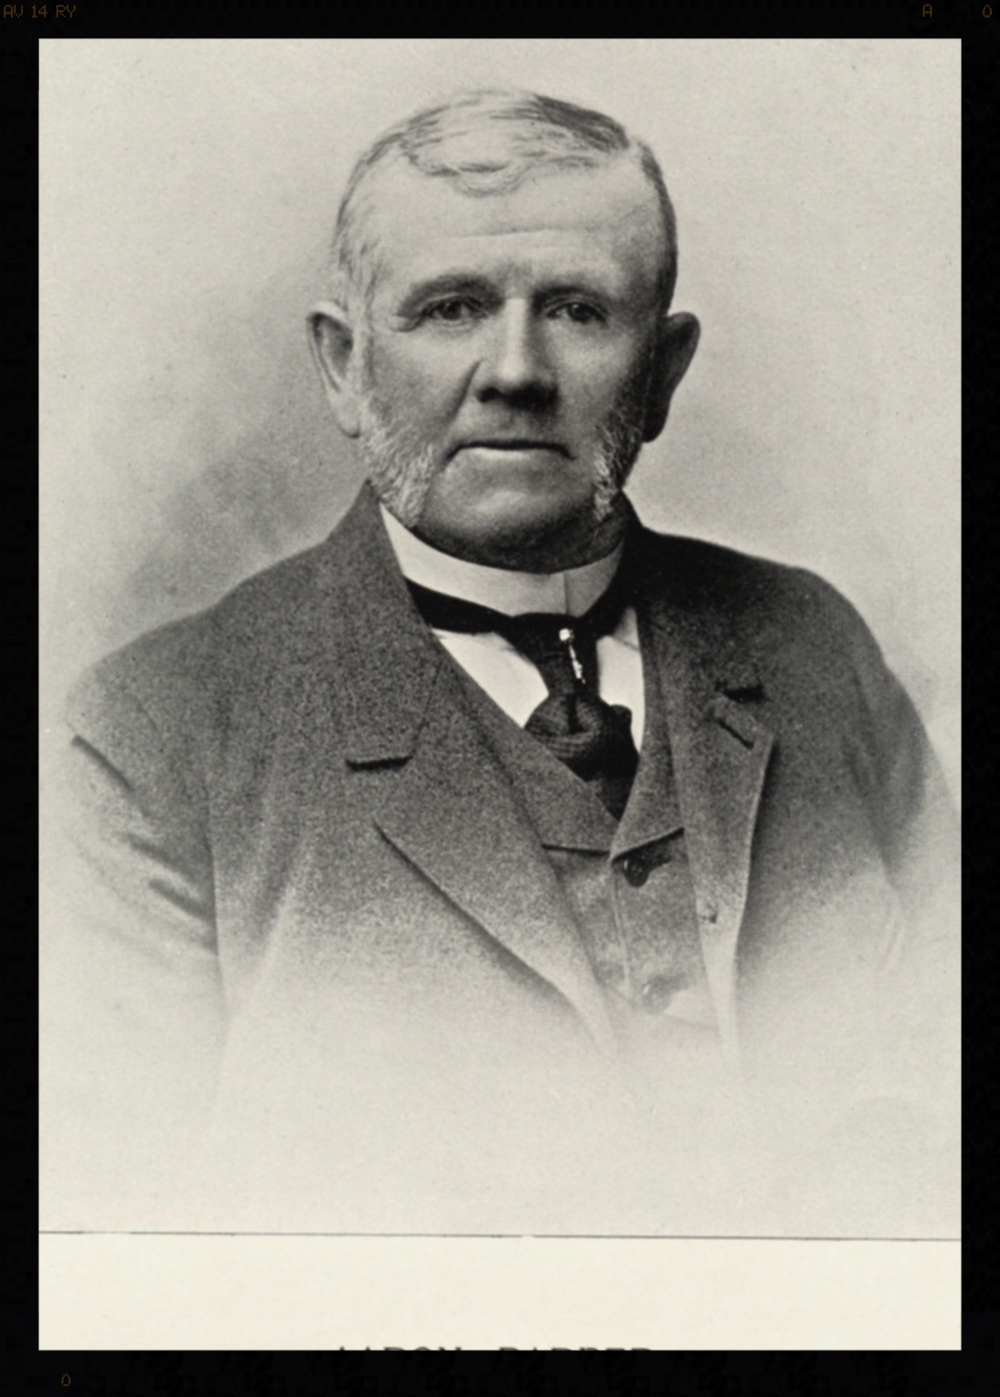 Aaron Barber III. Source: Mulligan Family private collection